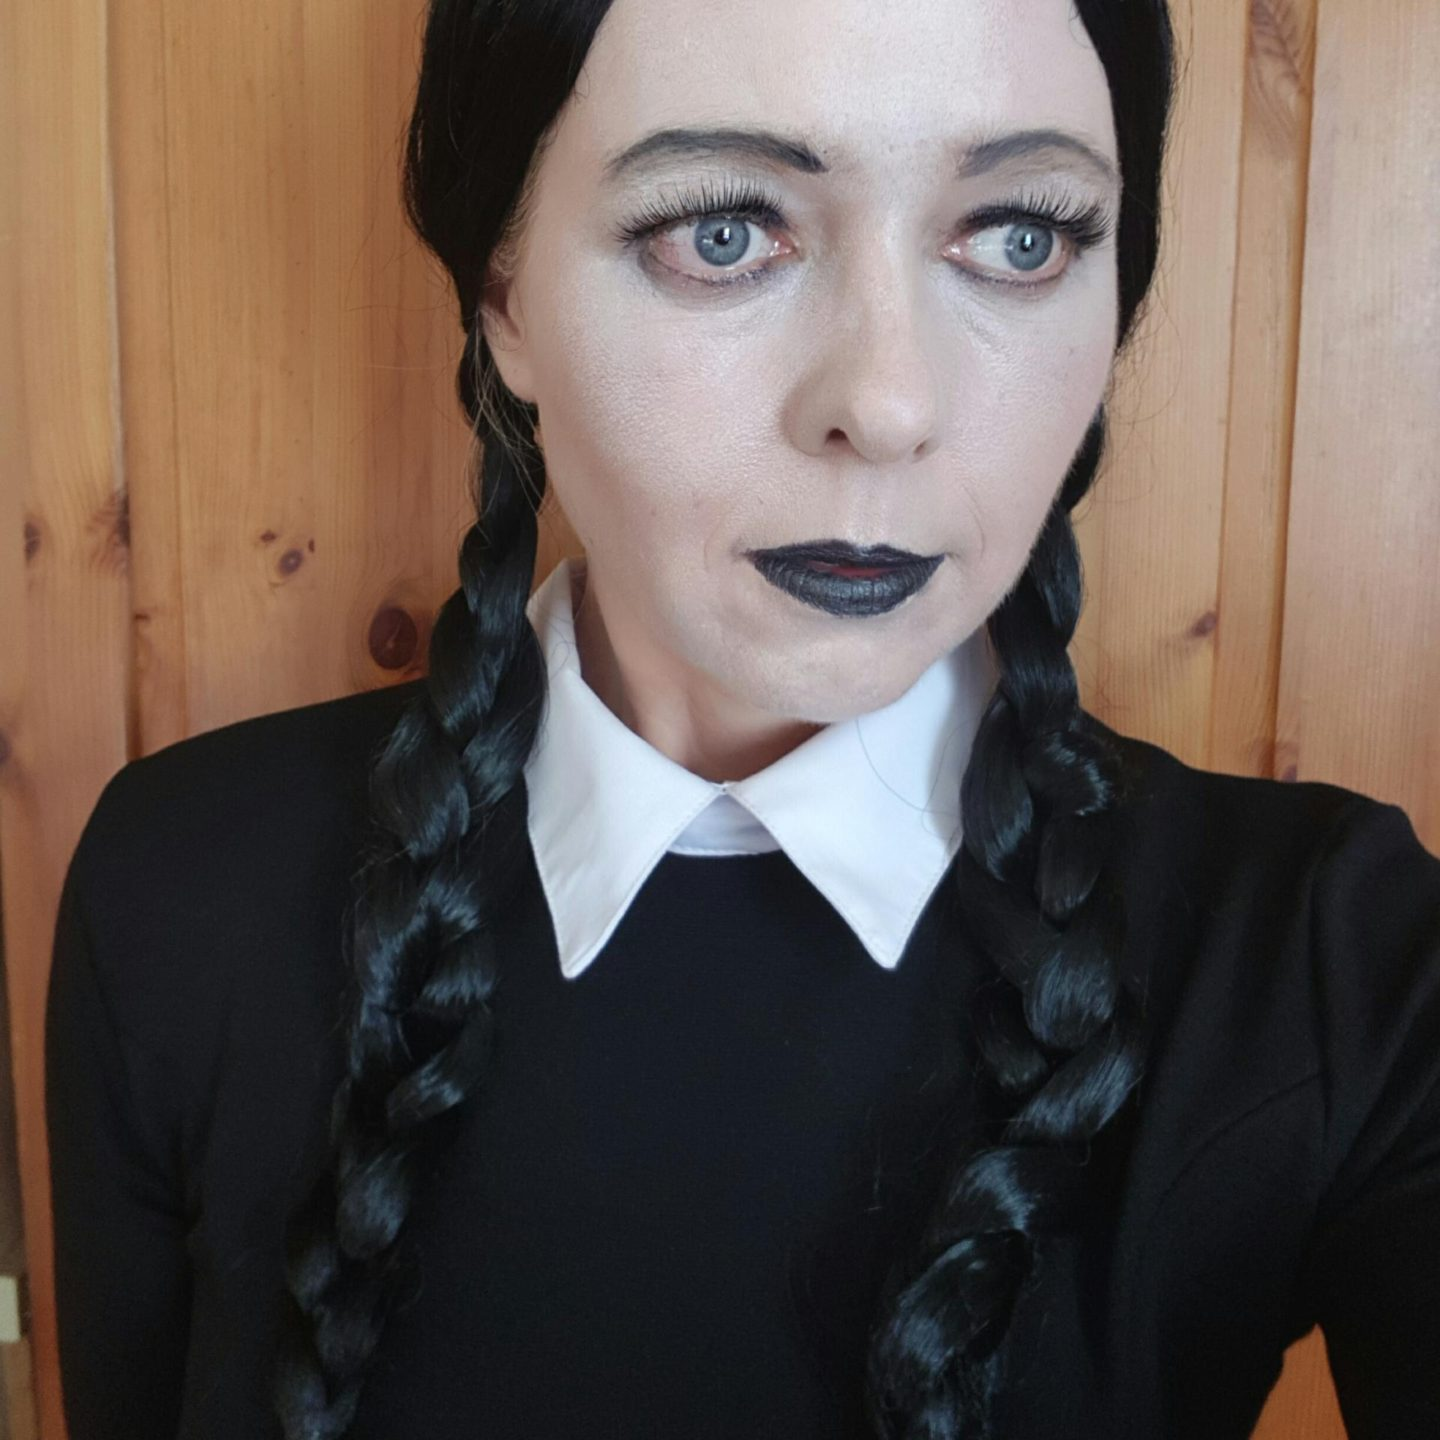 Wednesday Addams Makeup Look